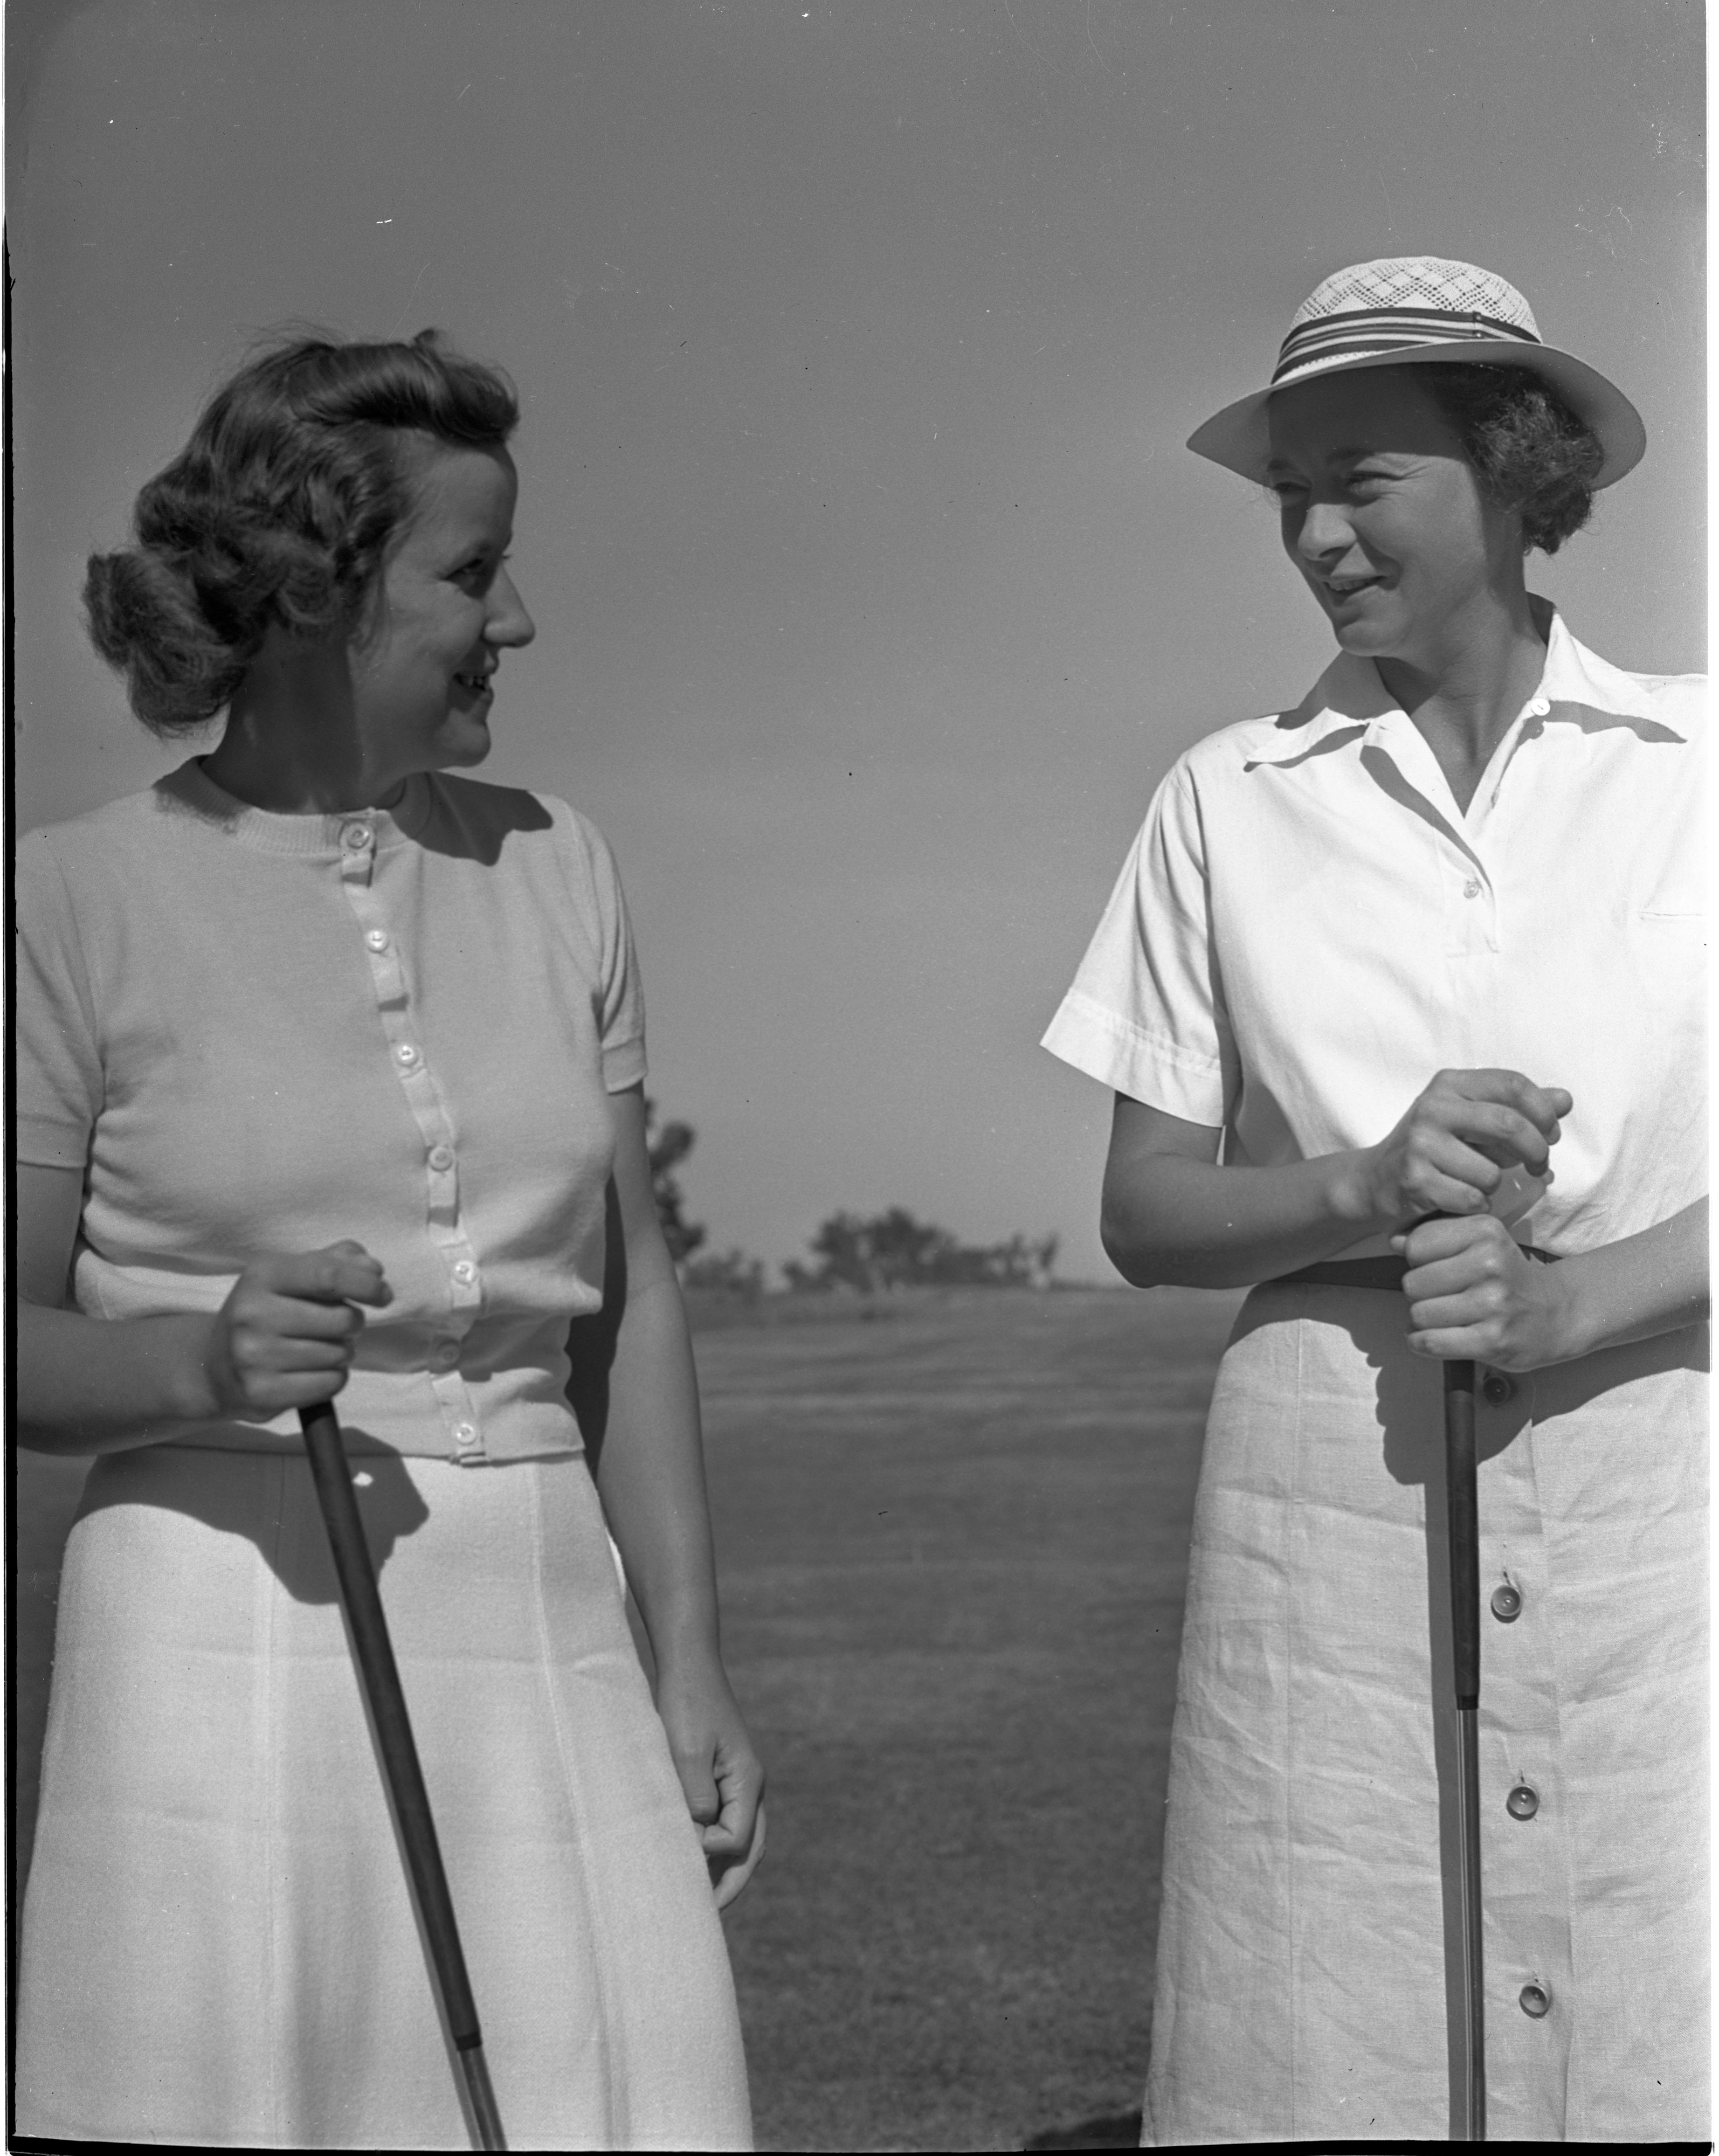 Betty Bonisteel & Jean Kyer At The Barton Hills Club Championship, August 1939 image